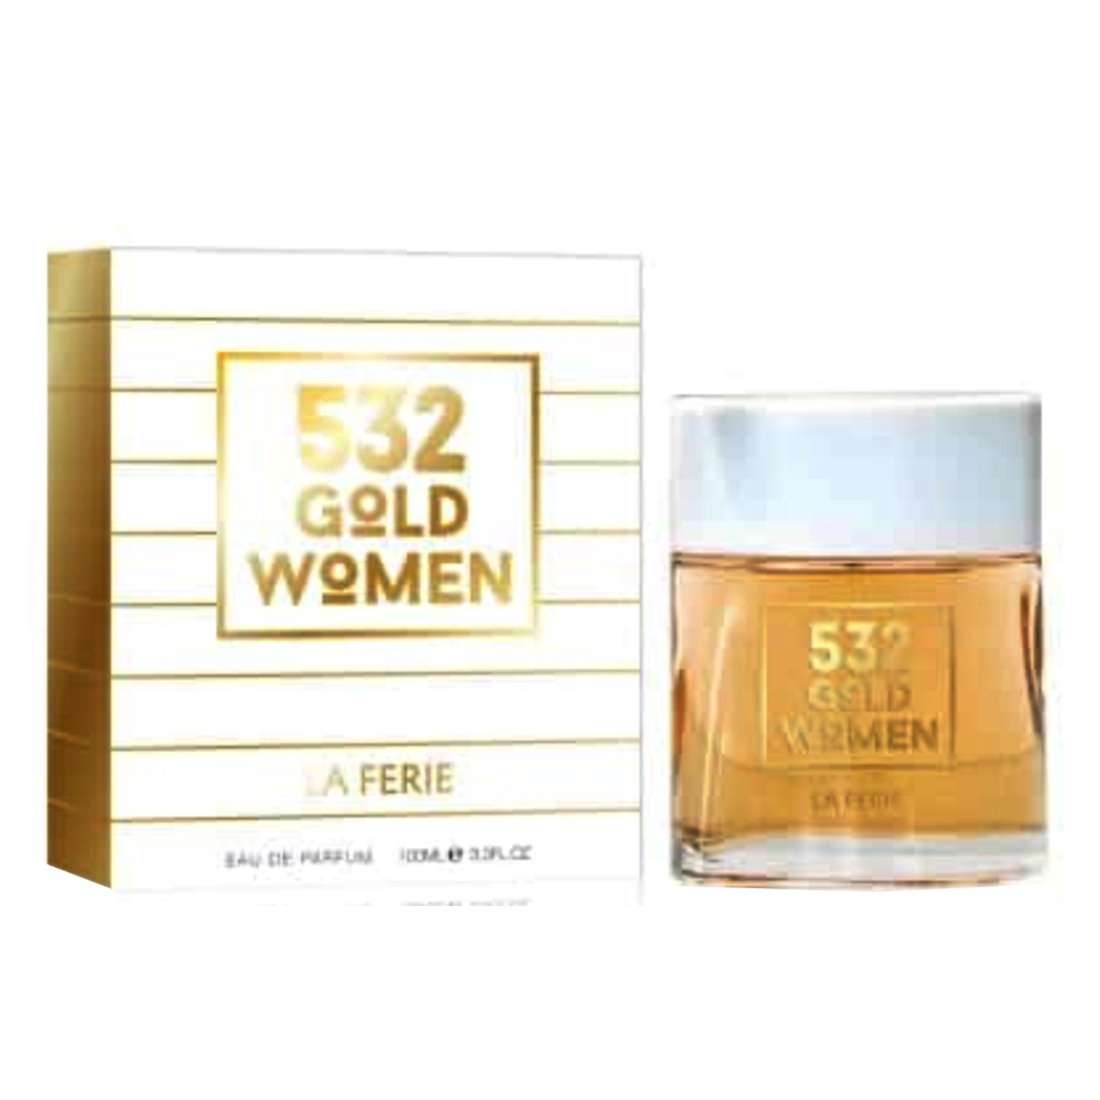 La Ferie 532 Gold Women Spray - 100ml